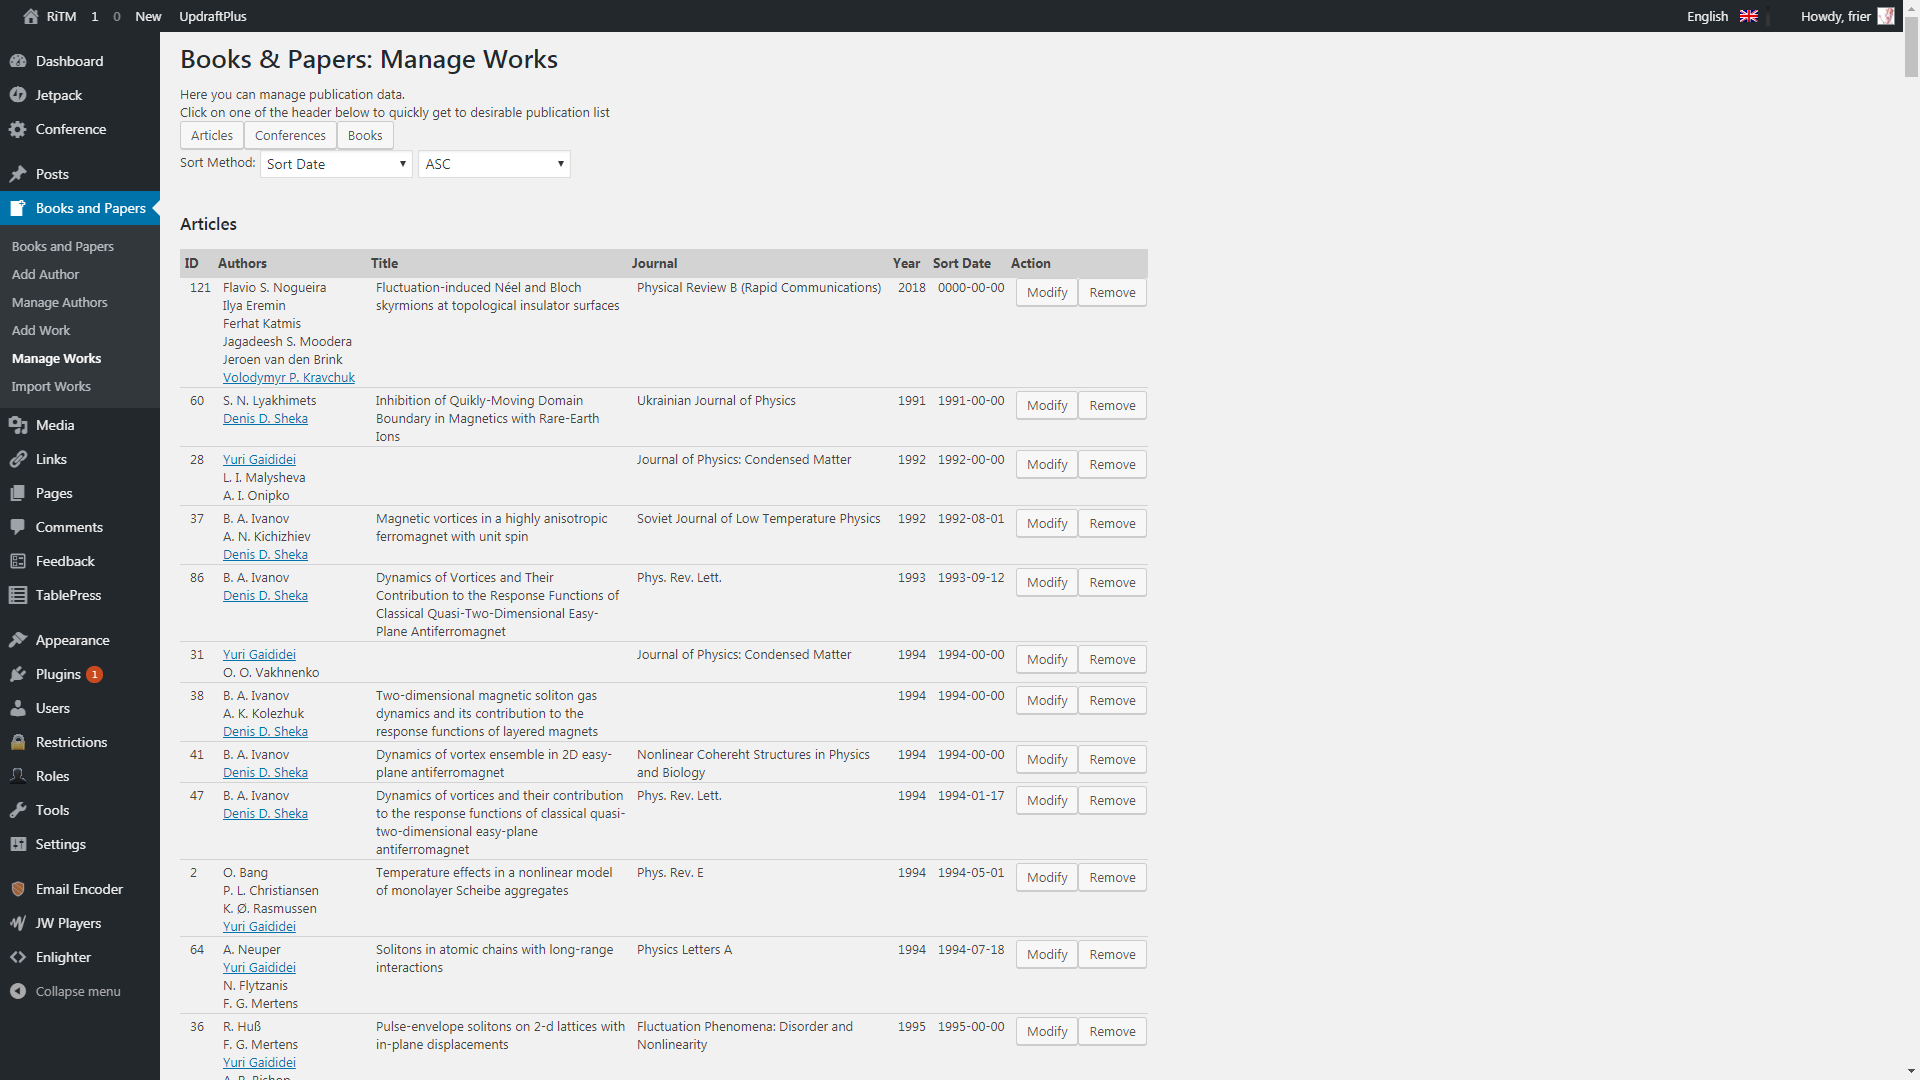 Plugin's works management admin menu.